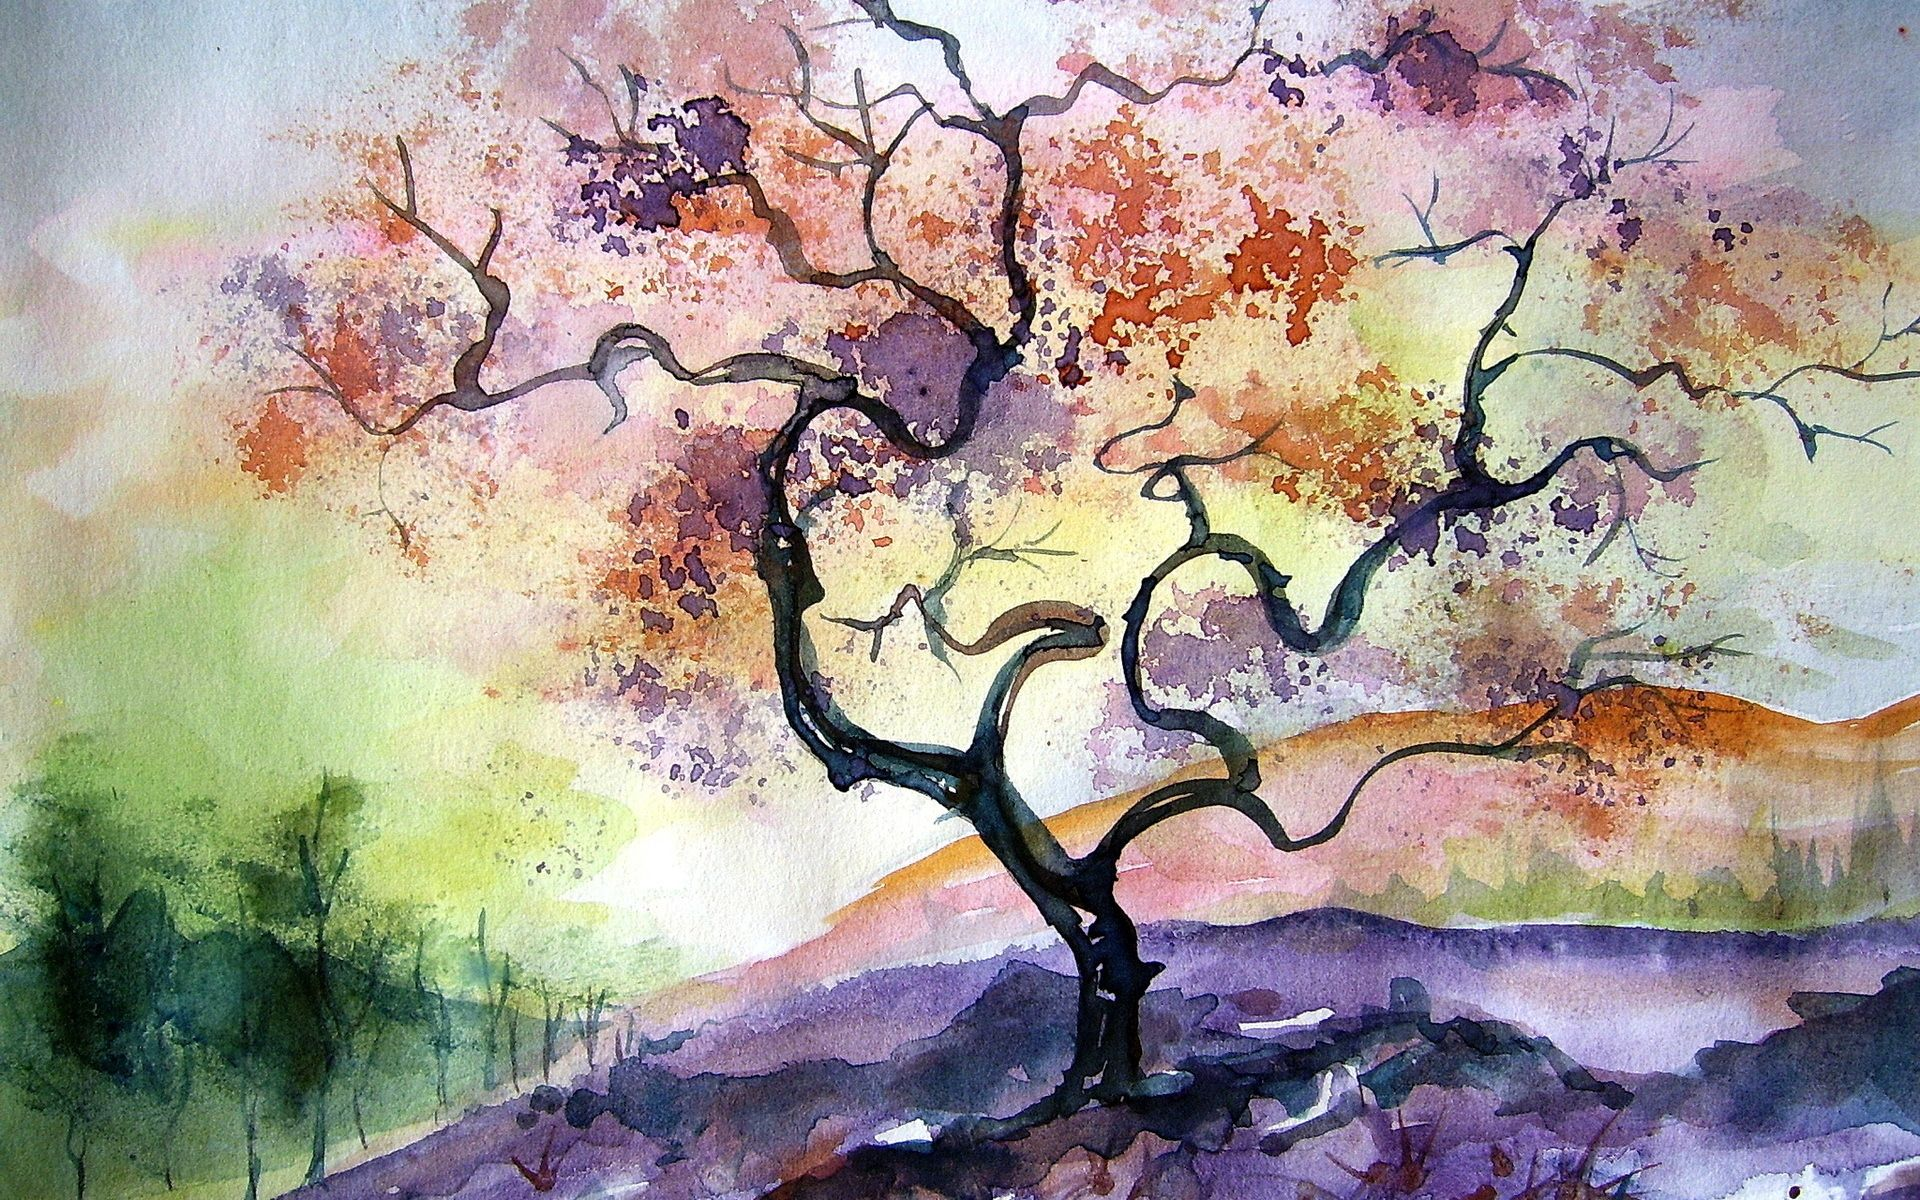 Watercolor Paintings Watercolor Tree Painting 1920x1200 12366